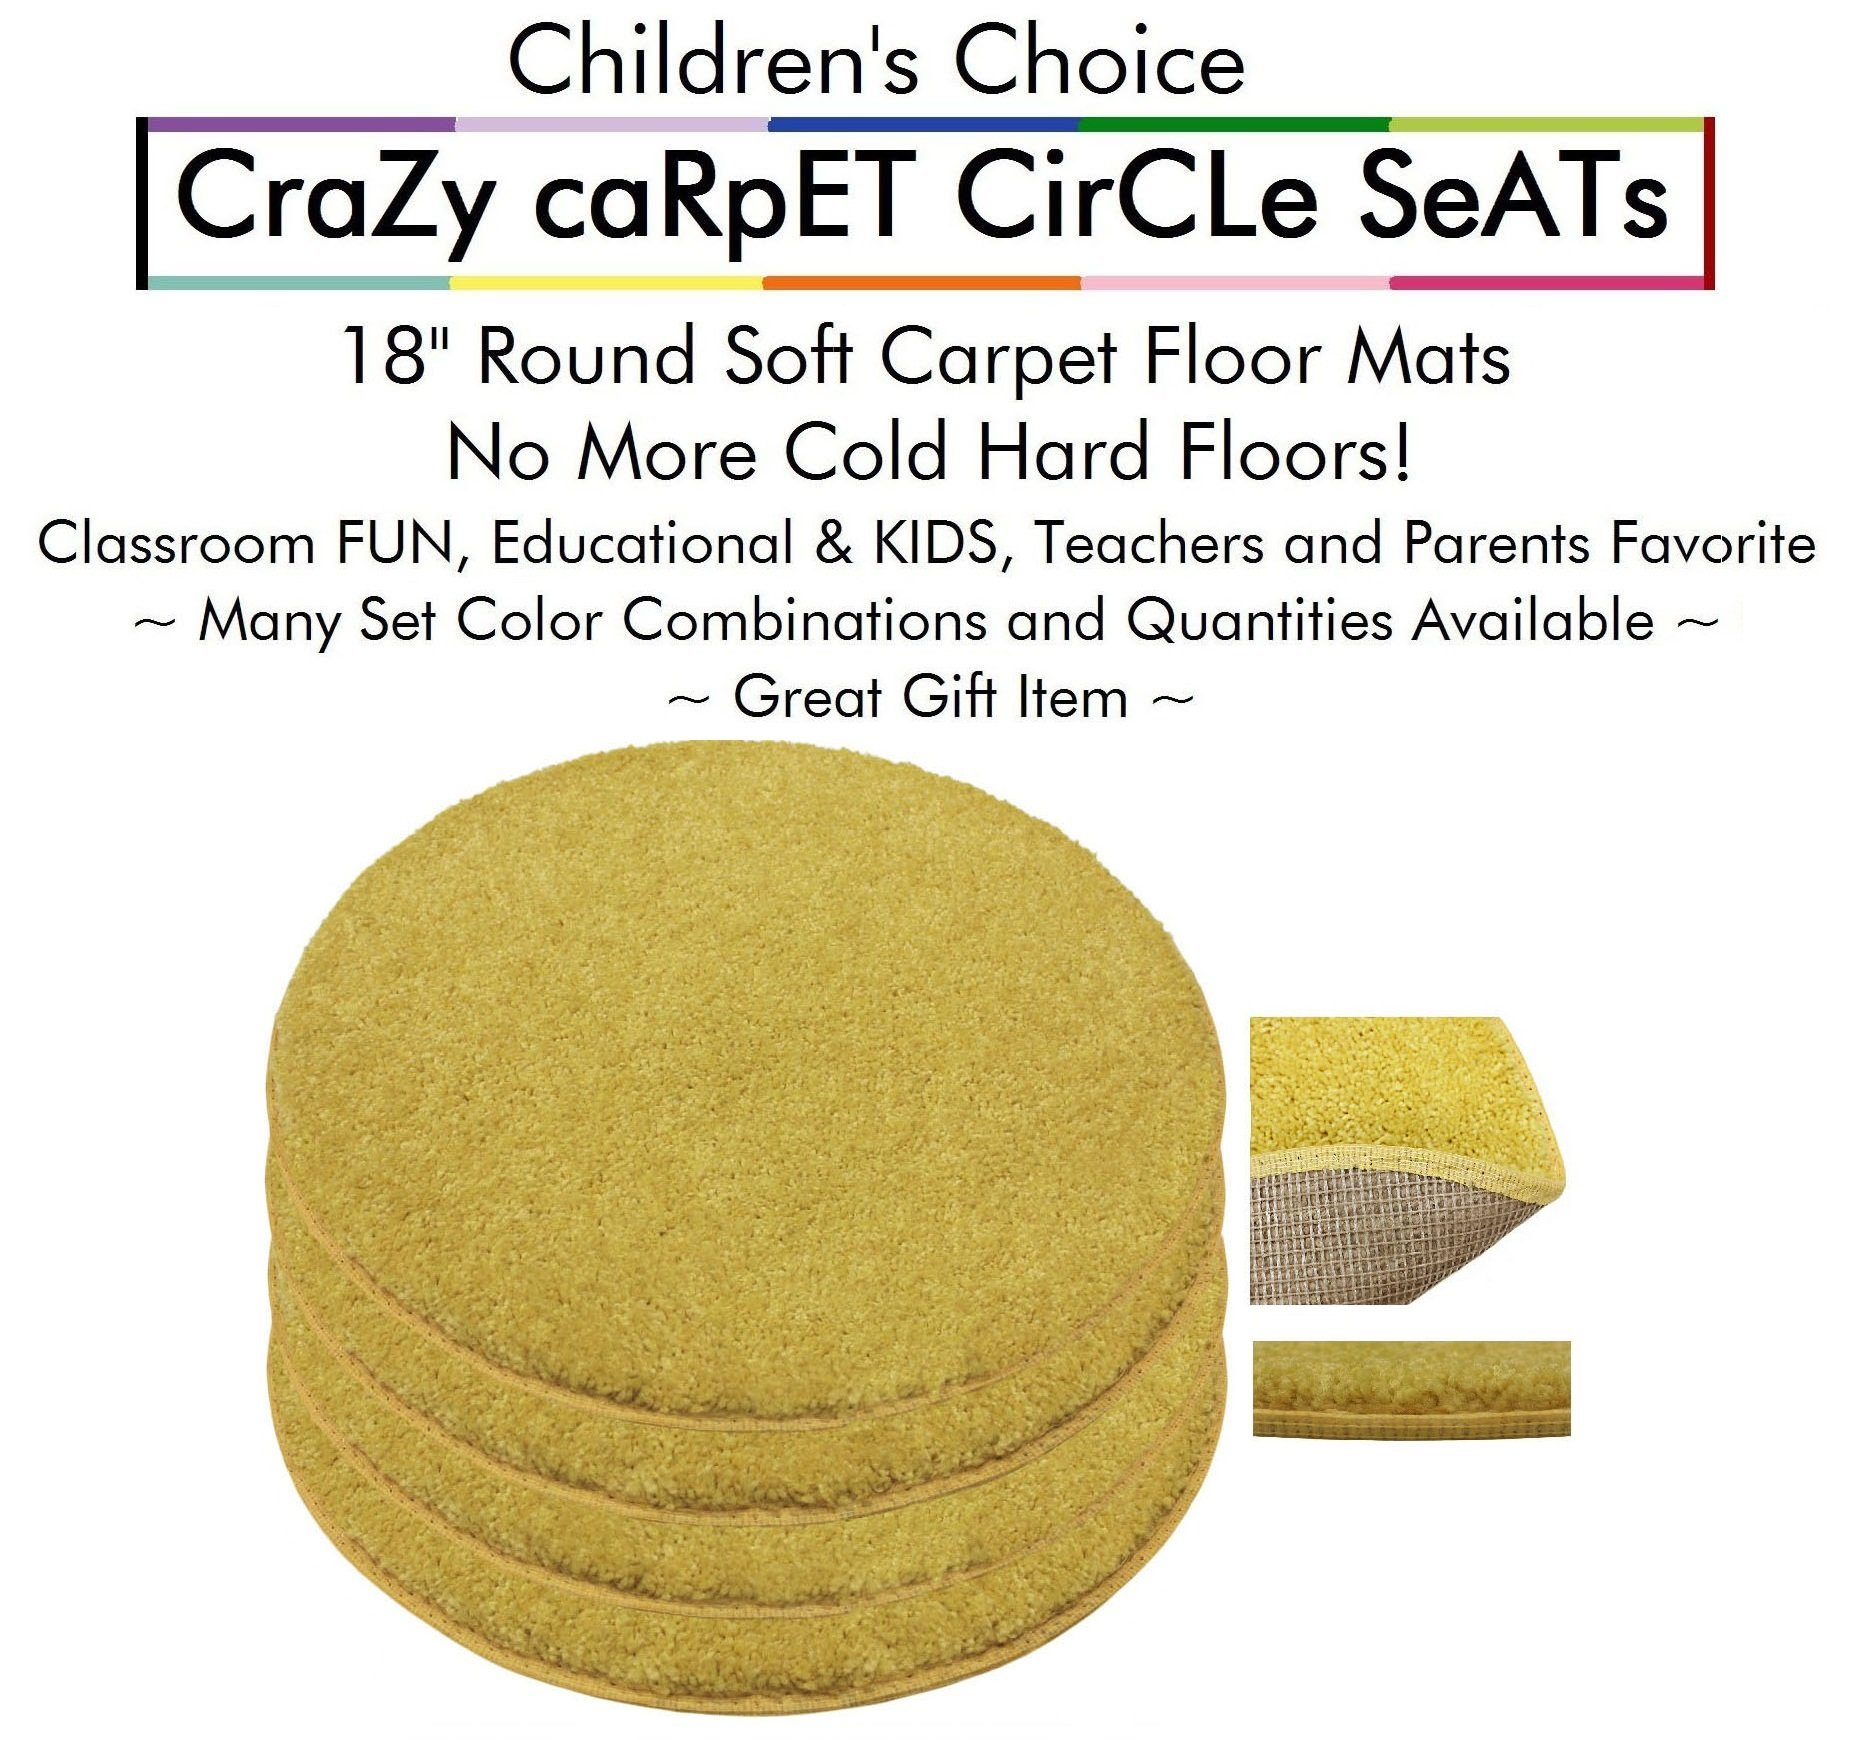 "Set 4 - Sunny Side Up Kids CraZy CarPet CirCle SeaTs 18"" Round Soft Warm Floor Mat - Cushions 